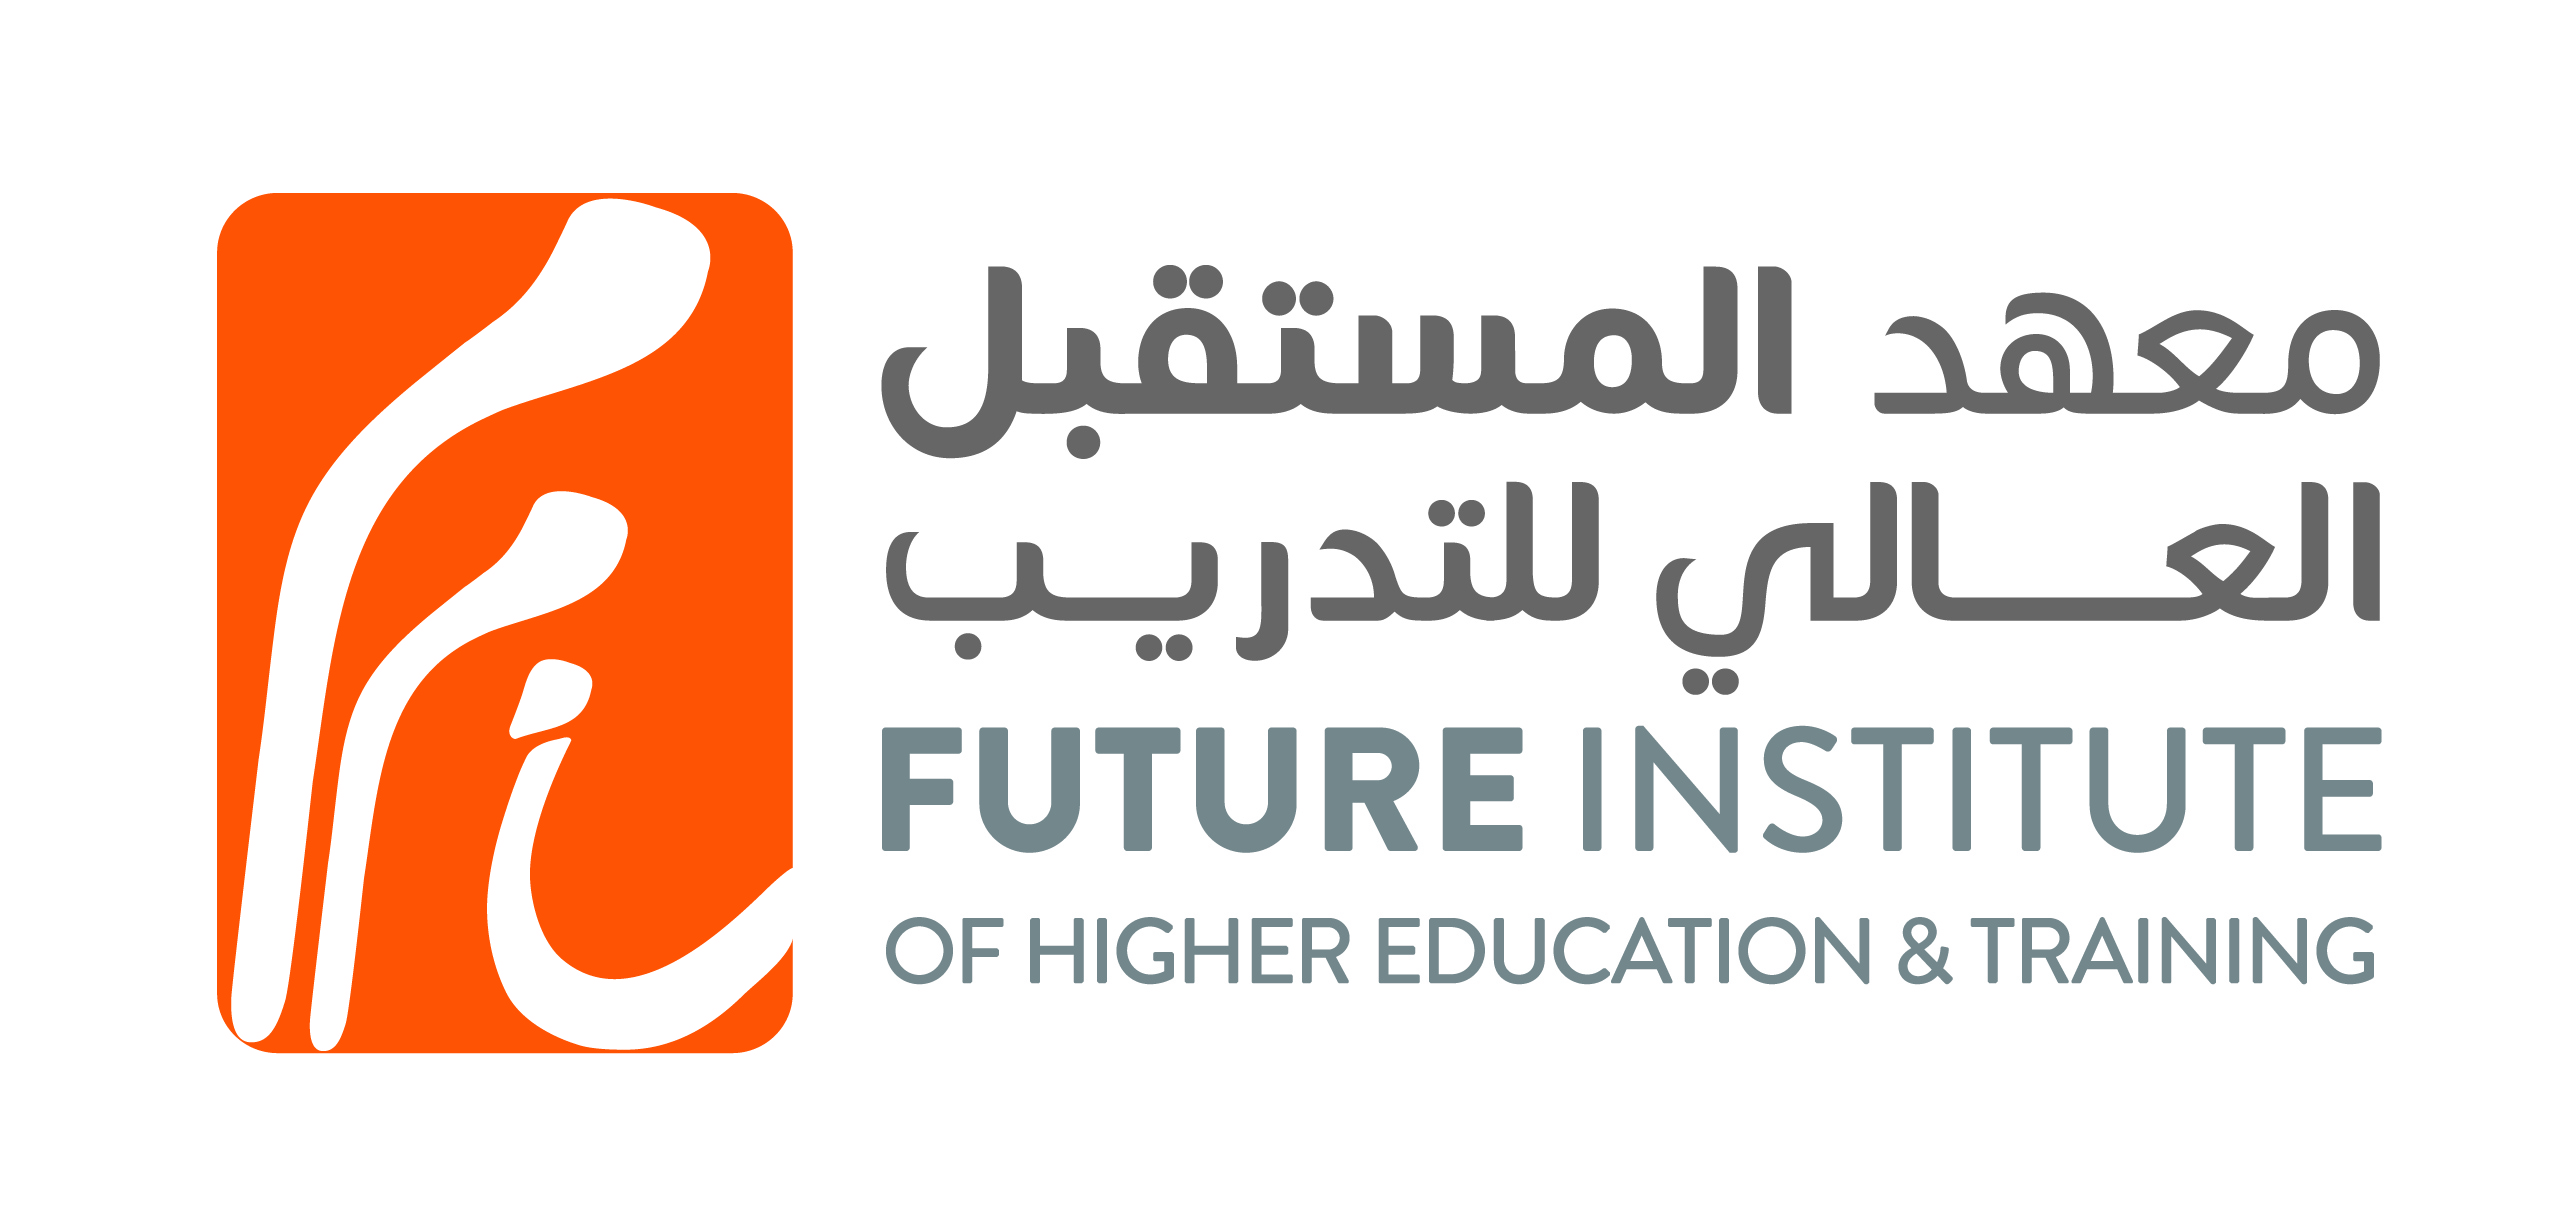 3 Years Interior Design Diploma In Al Andalus Jeddah From Future Institute Of Higher Education Training For Ladies Laimoon Com